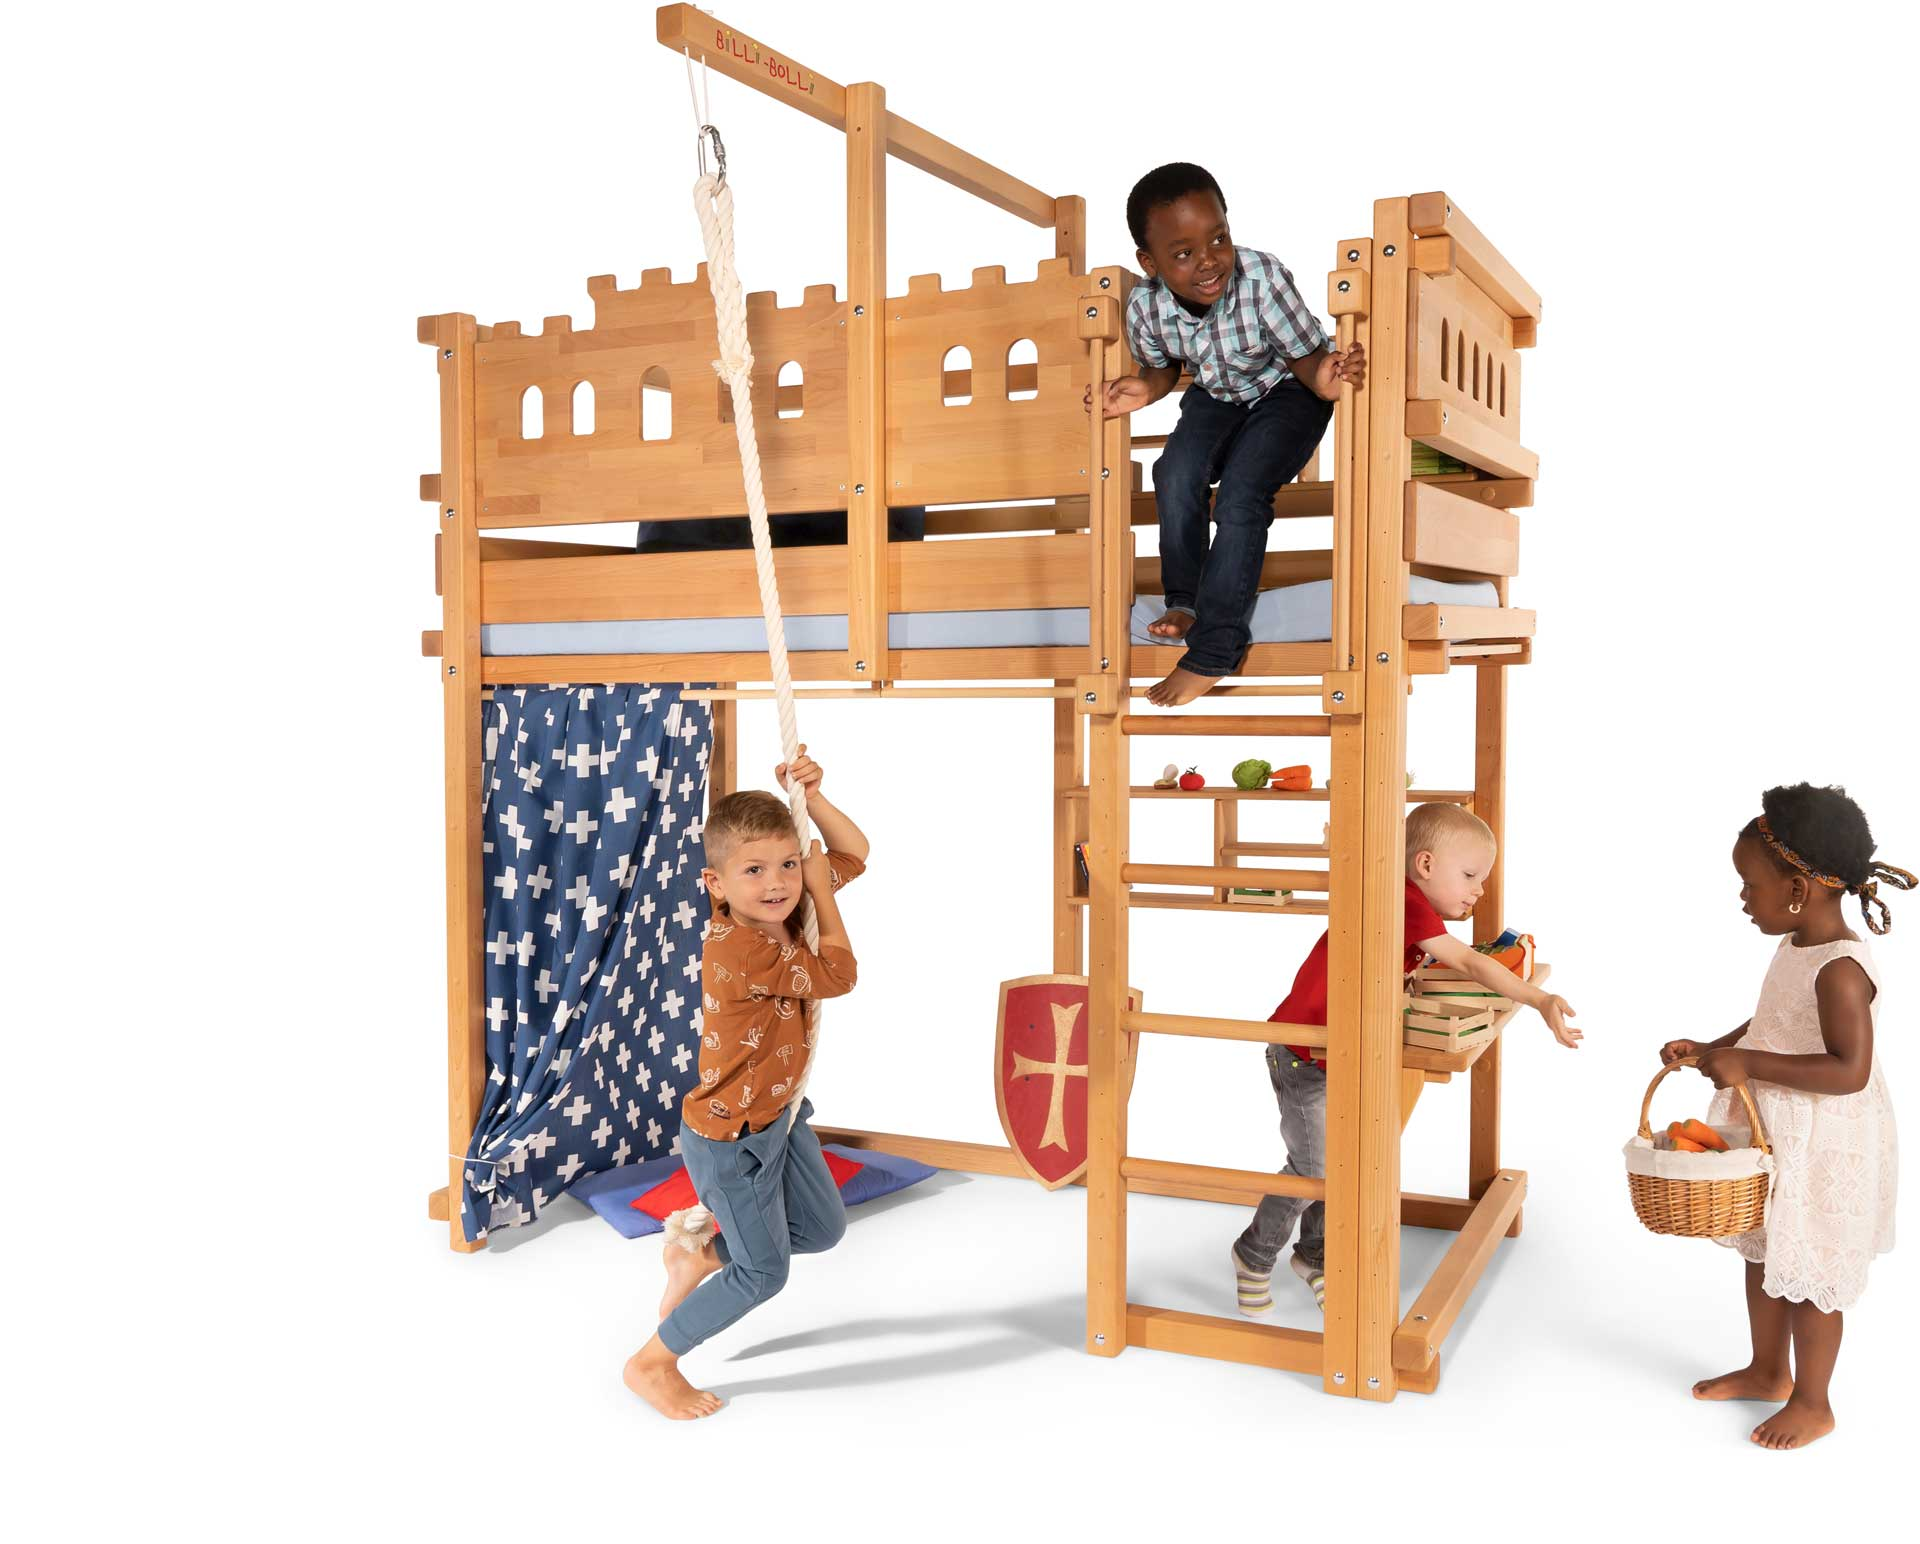 The Loft Bed Adjustable by Age in beech, assembled at height 5. Pictured with Knight's Castle Theme Boards, swing beam, Climbing Rope, Small Bed Shelf, Play Shop Shelf, Curtain Rods and mattress Nele Plus.